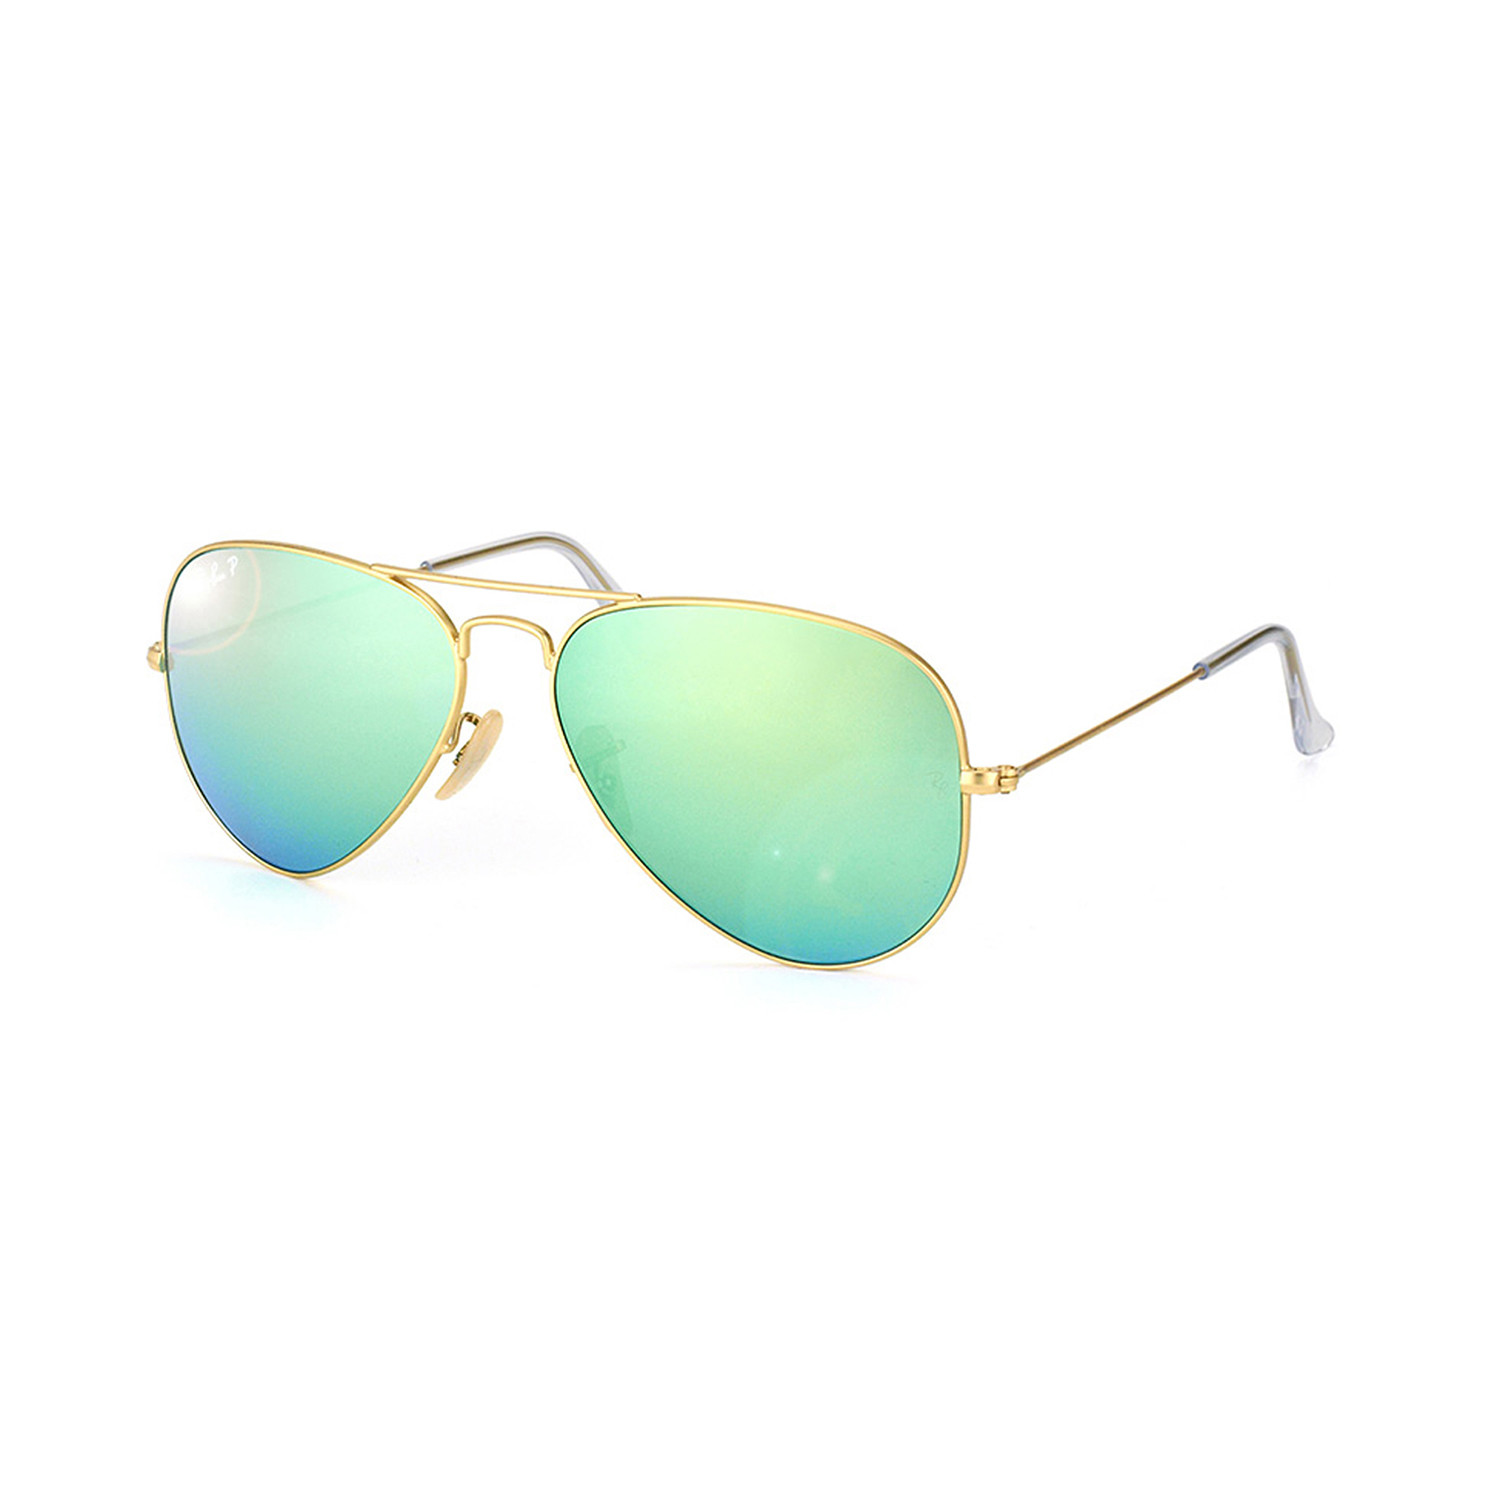 1a8762a191b 3ce890ba7e9feee8bda9d8e17ec20b73 medium · Ray-Ban    Large Metal Aviator    Matte  Gold + Green Mirror